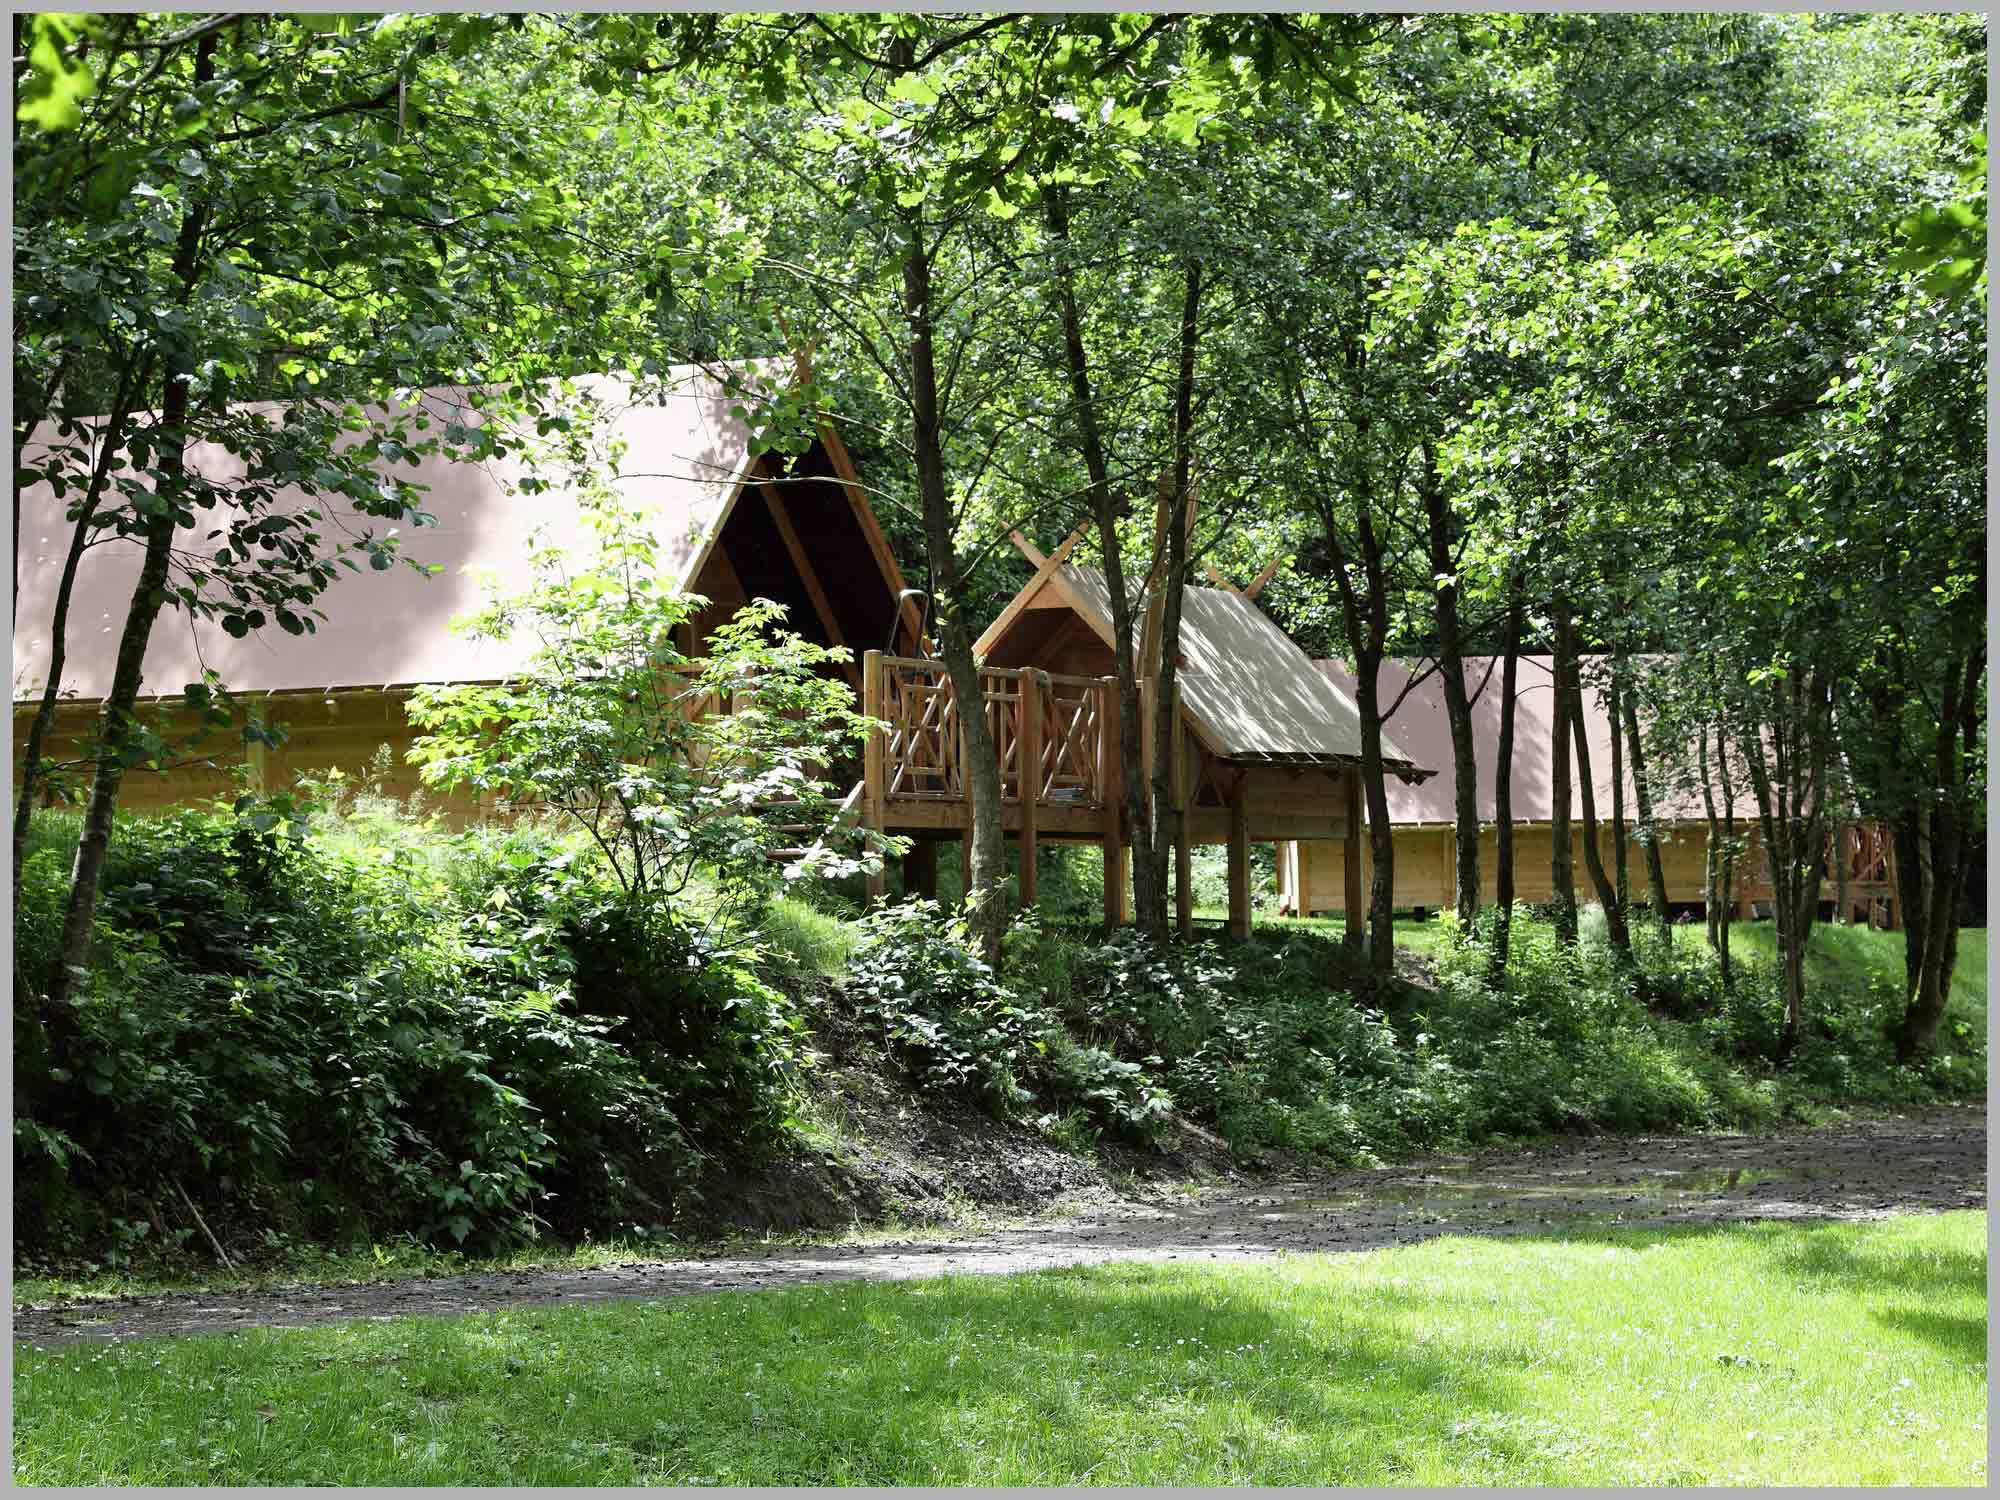 ardenne residences news blog article holiday houses huts and cabins in the woods